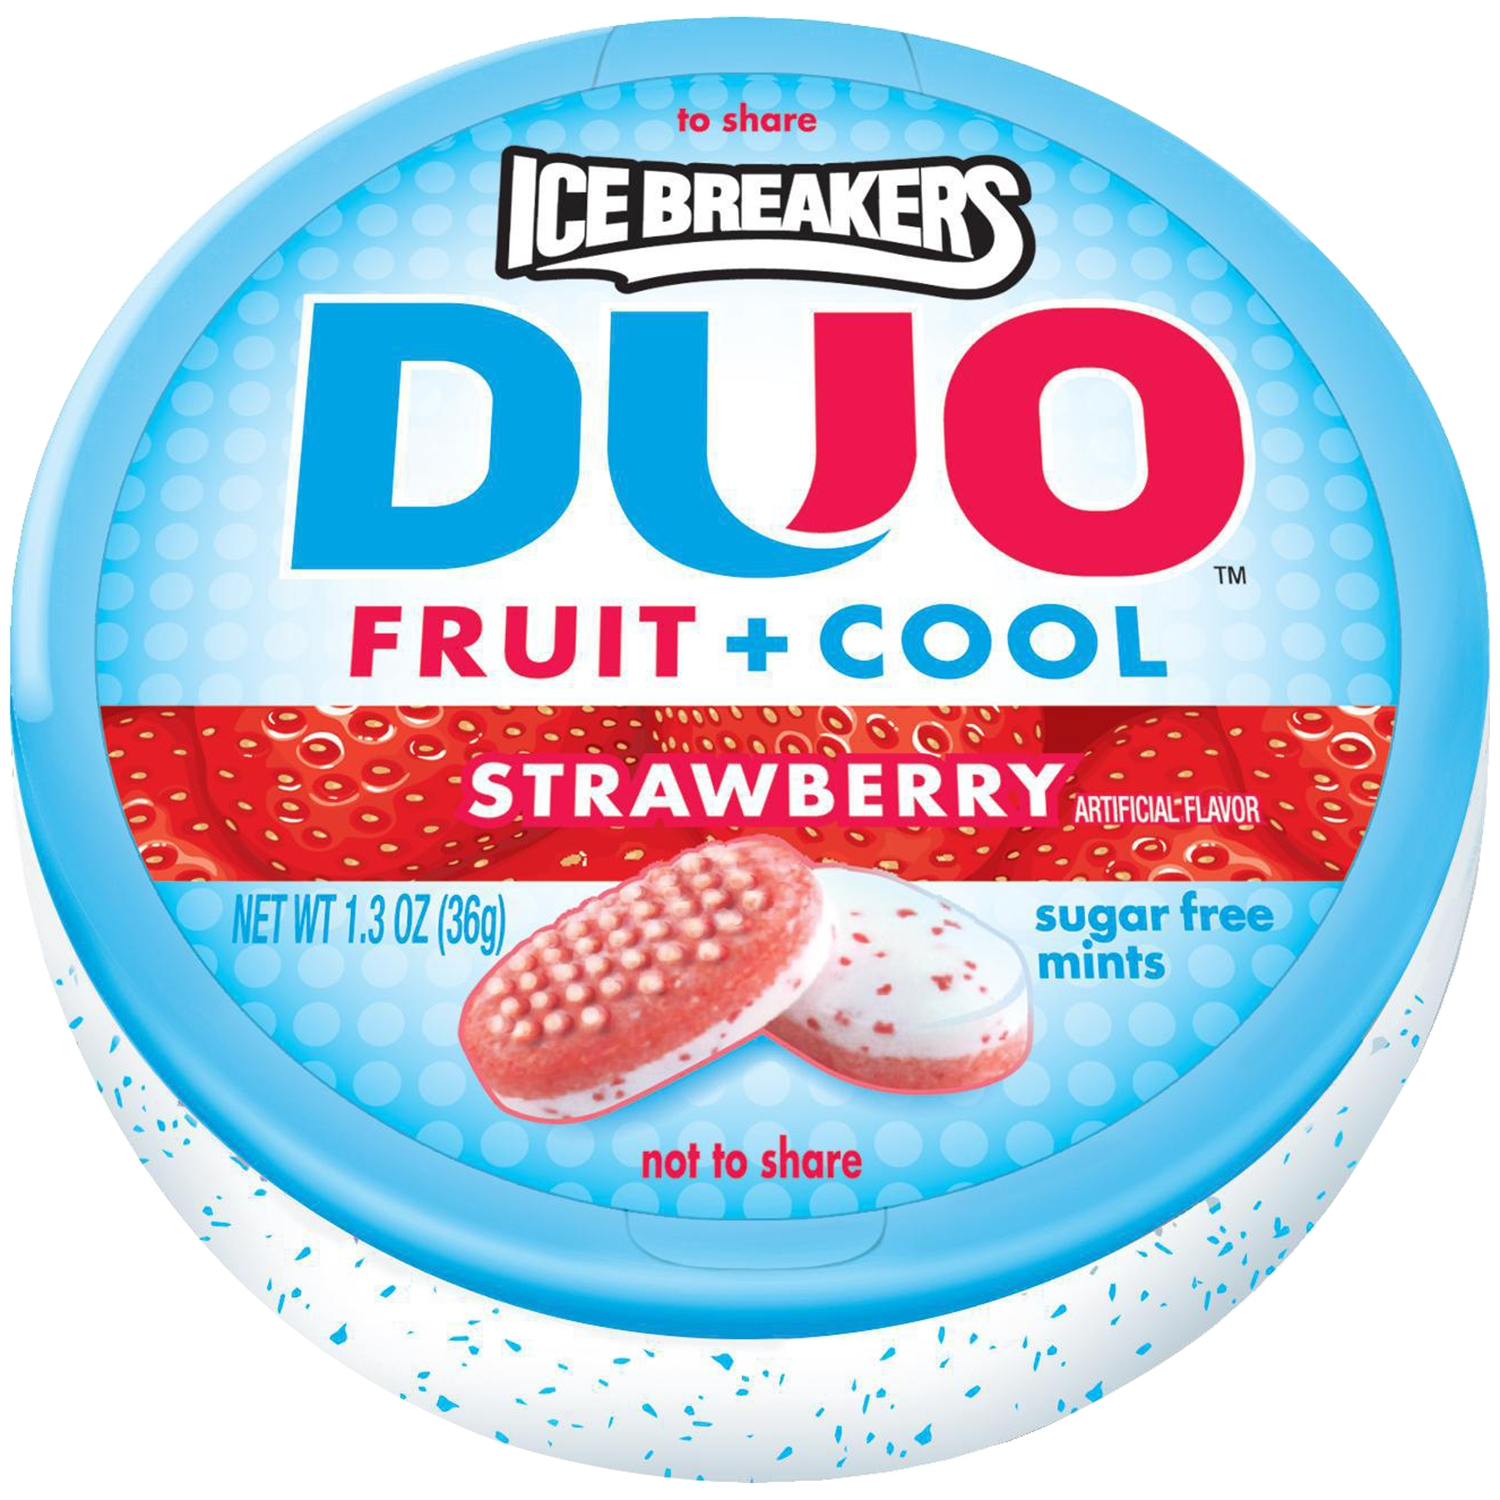 ICE BREAKERS DUO Strawberry Flavored Mints, 1.3 oz by Hershey